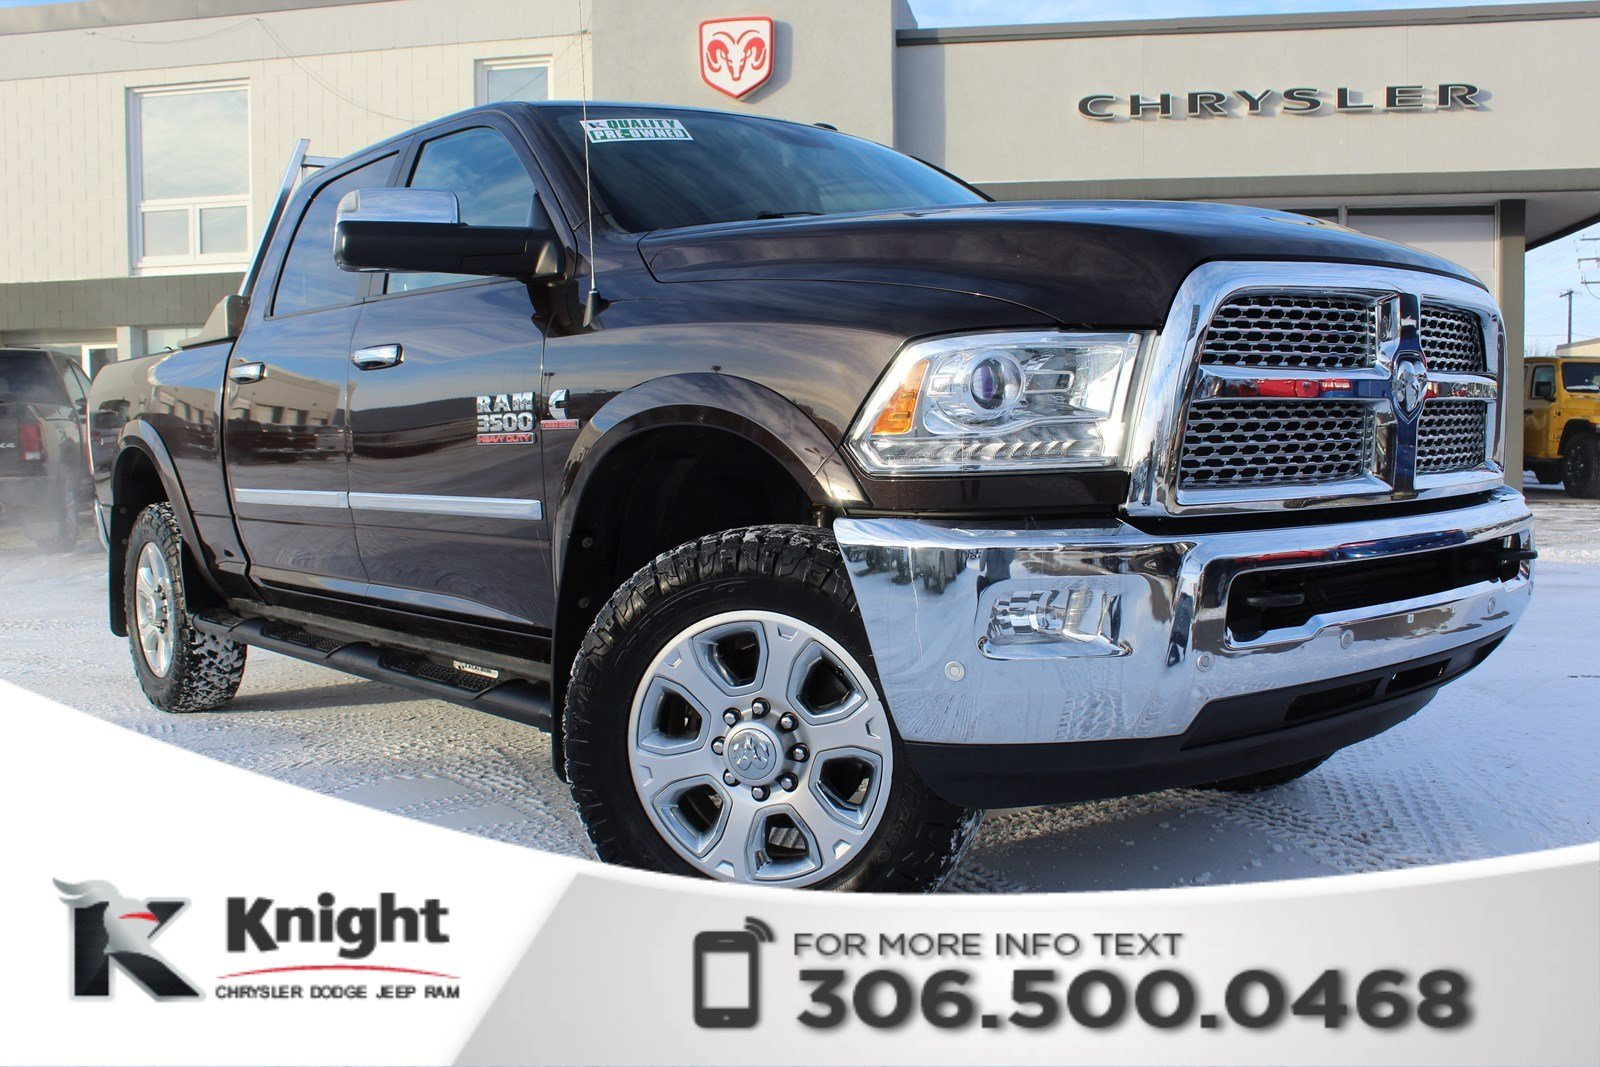 Knight Dodge Swift Current >> Pre-Owned 2016 Ram 3500 Laramie - Remote Start - Heated ...